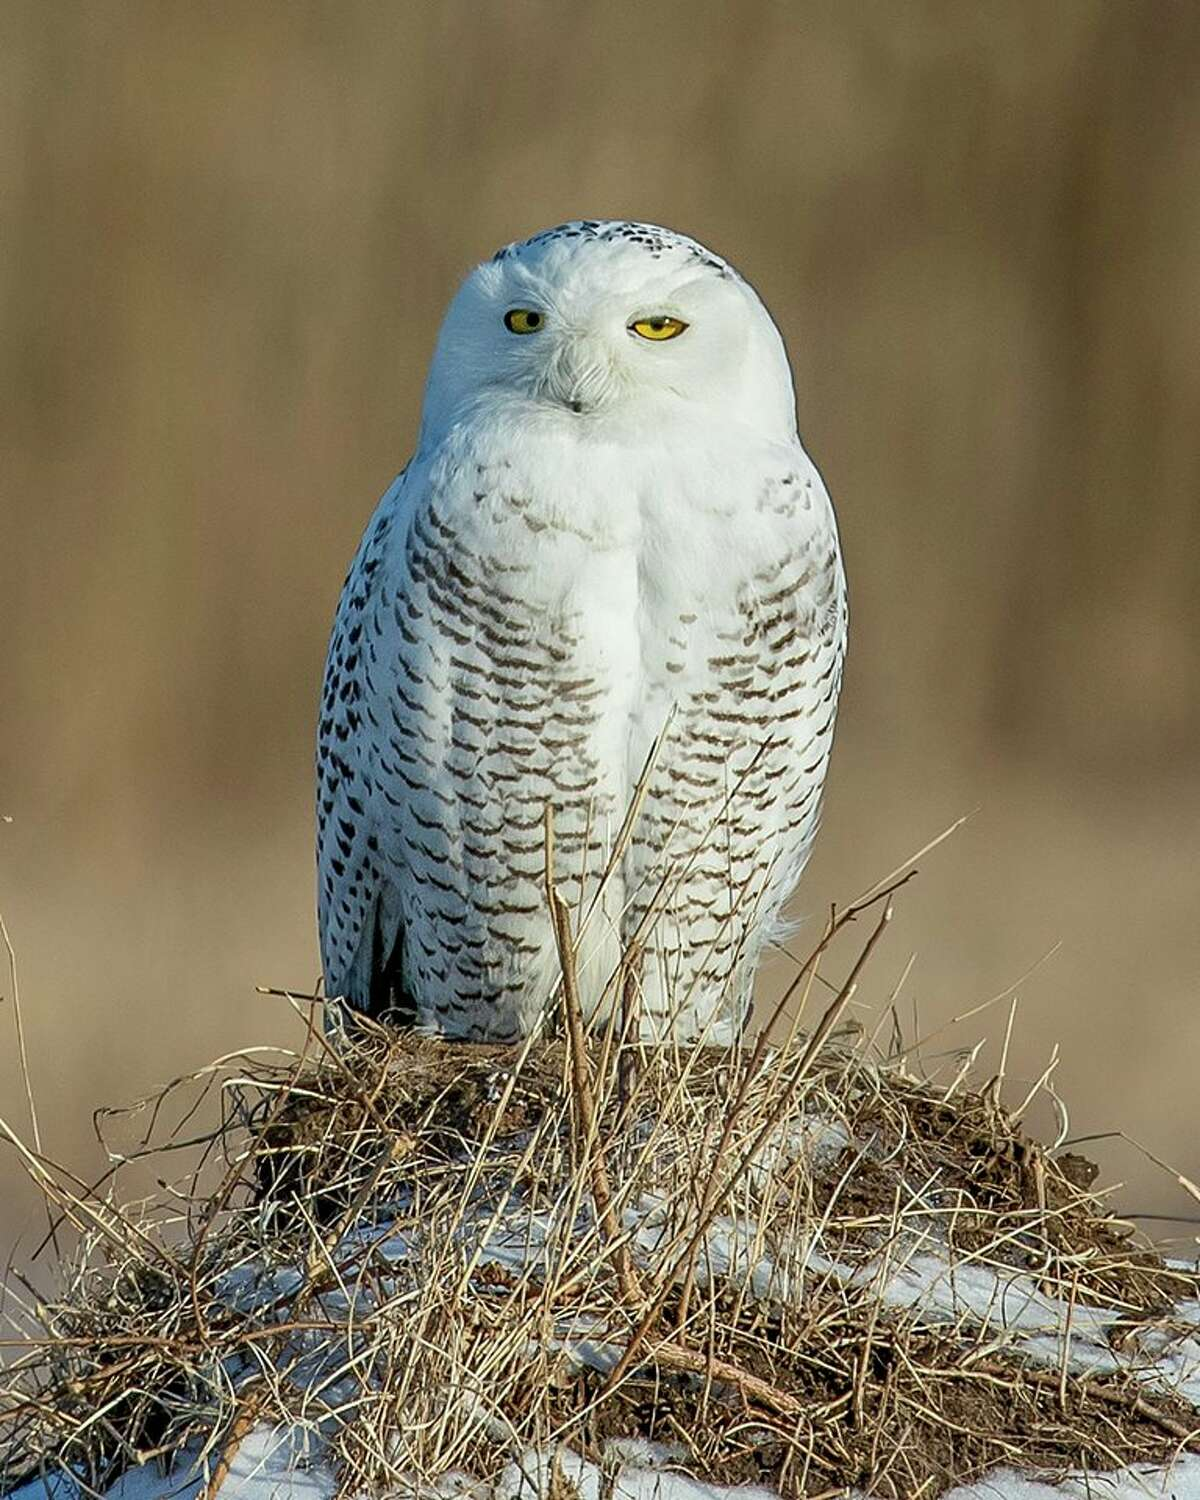 A snowy owl in a field near Fort Edward in Washington County. State wildlife officials have issued a warning to overzealous photographers who are approaching too close from the birds, which stresses them and interferes with their hunting.